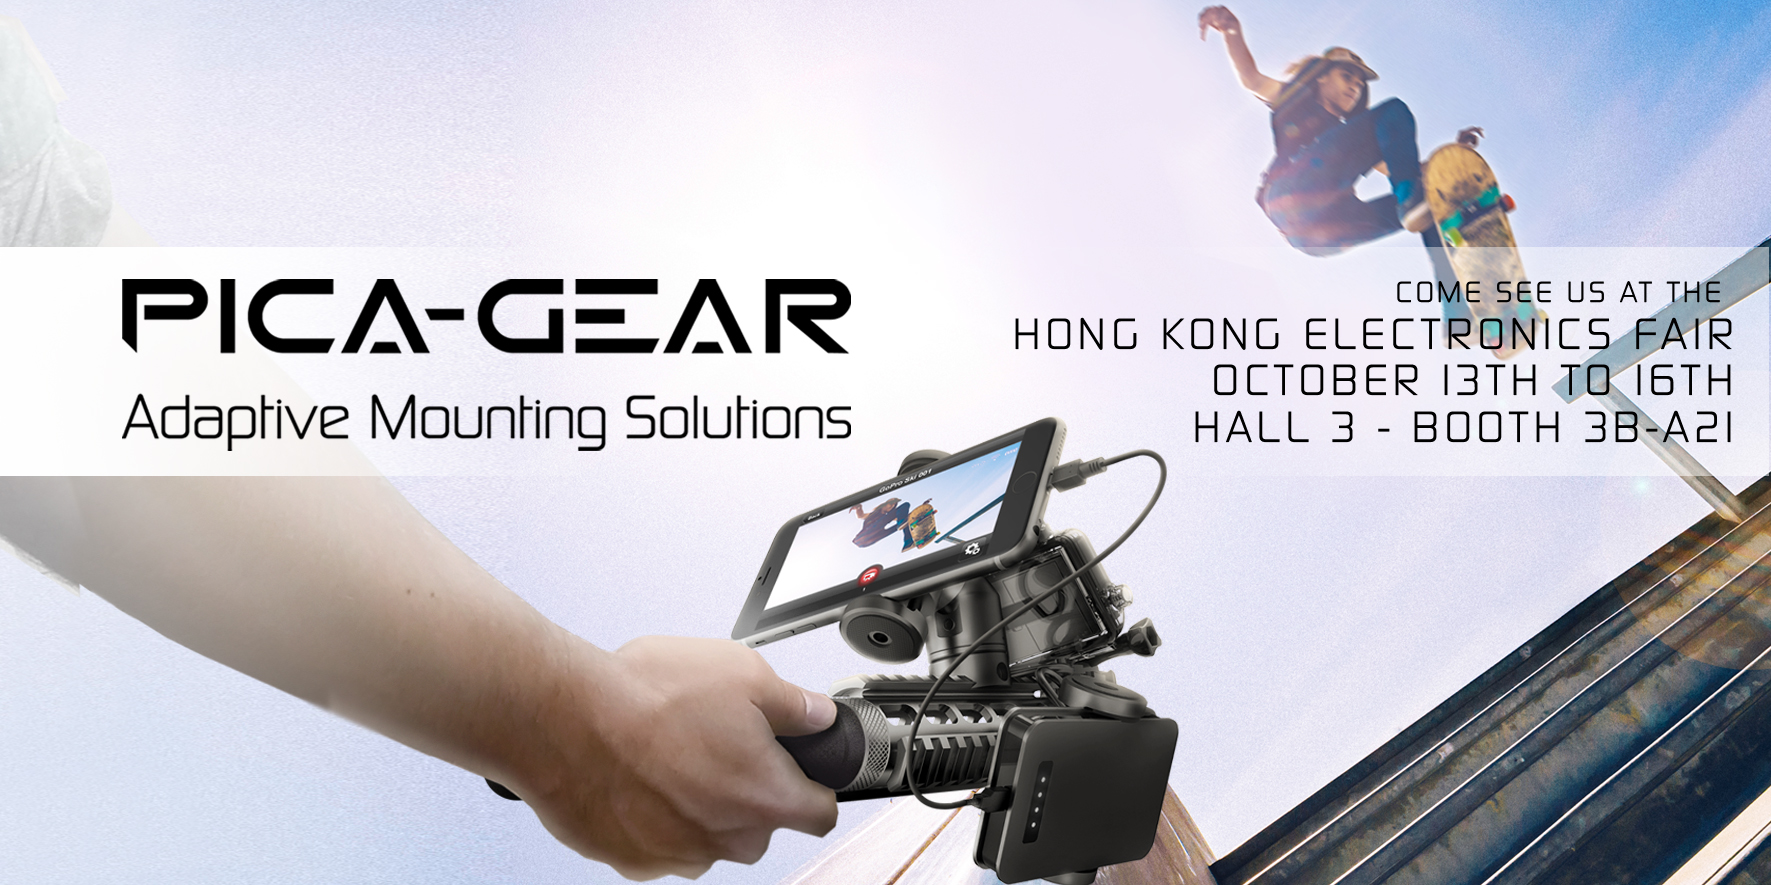 pica-pod portable camera mounting solution - HKTDC launch